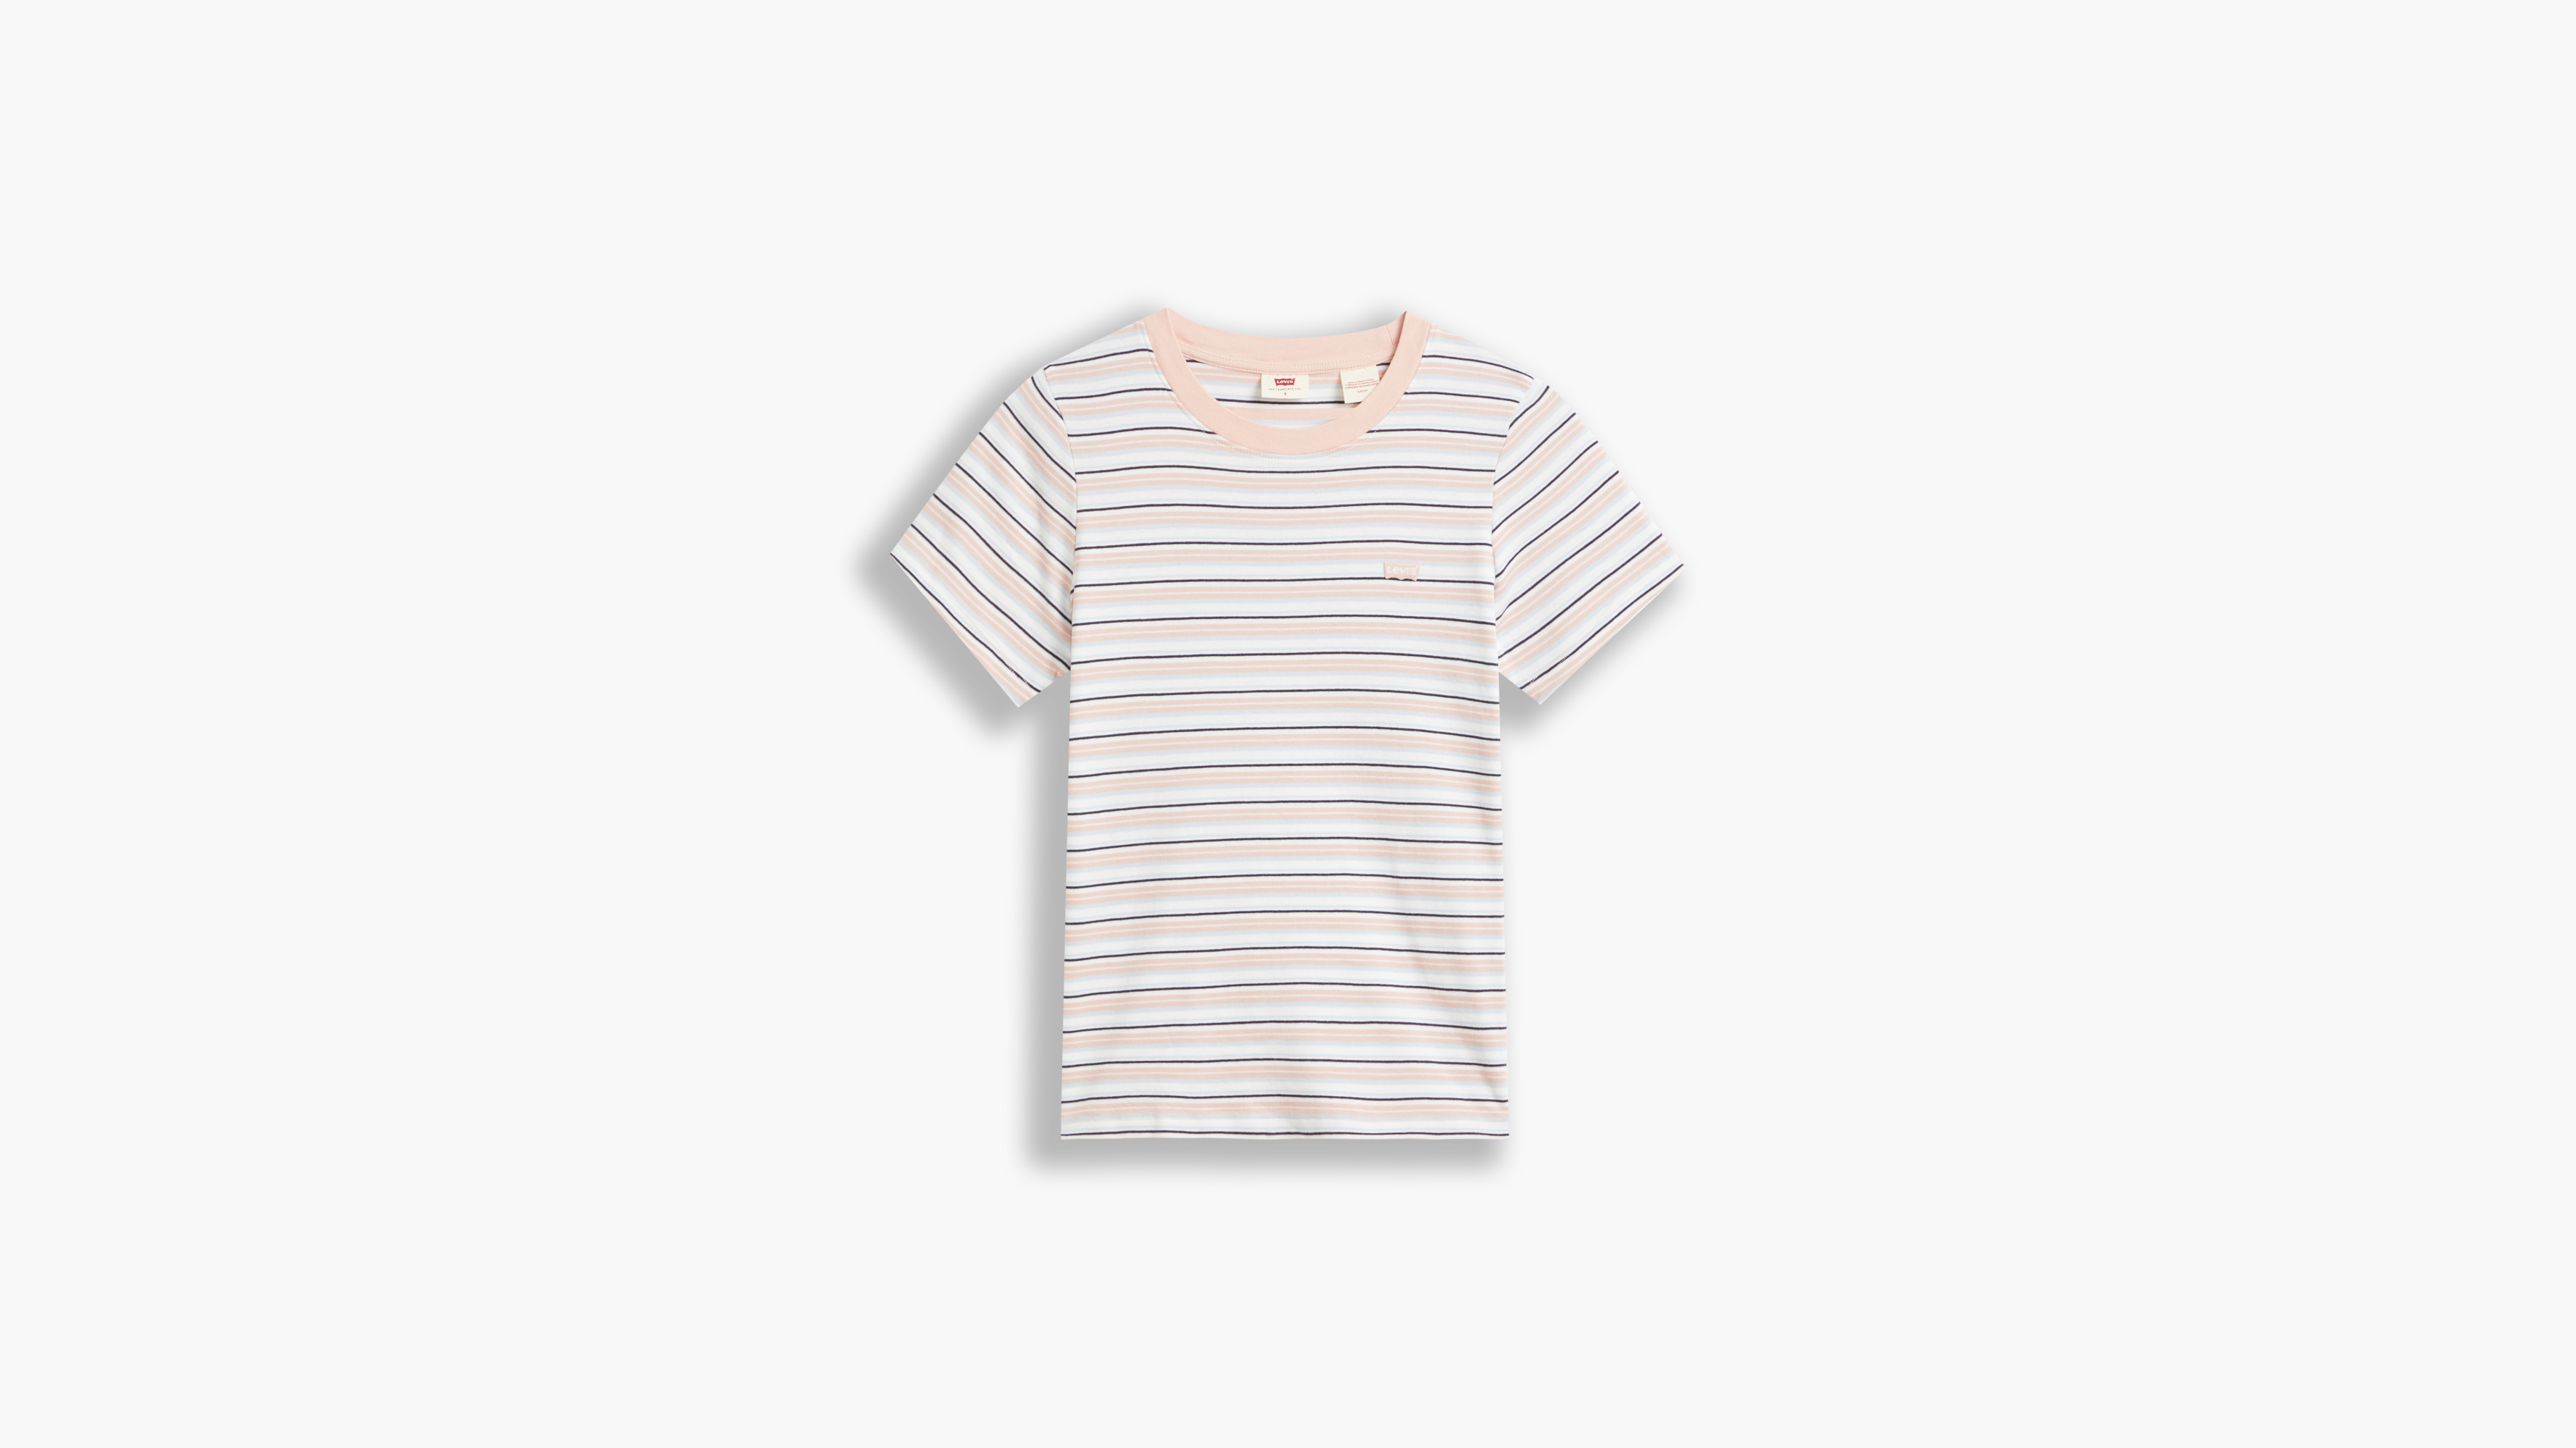 Levi's SS Rib Baby t-shirt, coco stripe evening sands, small